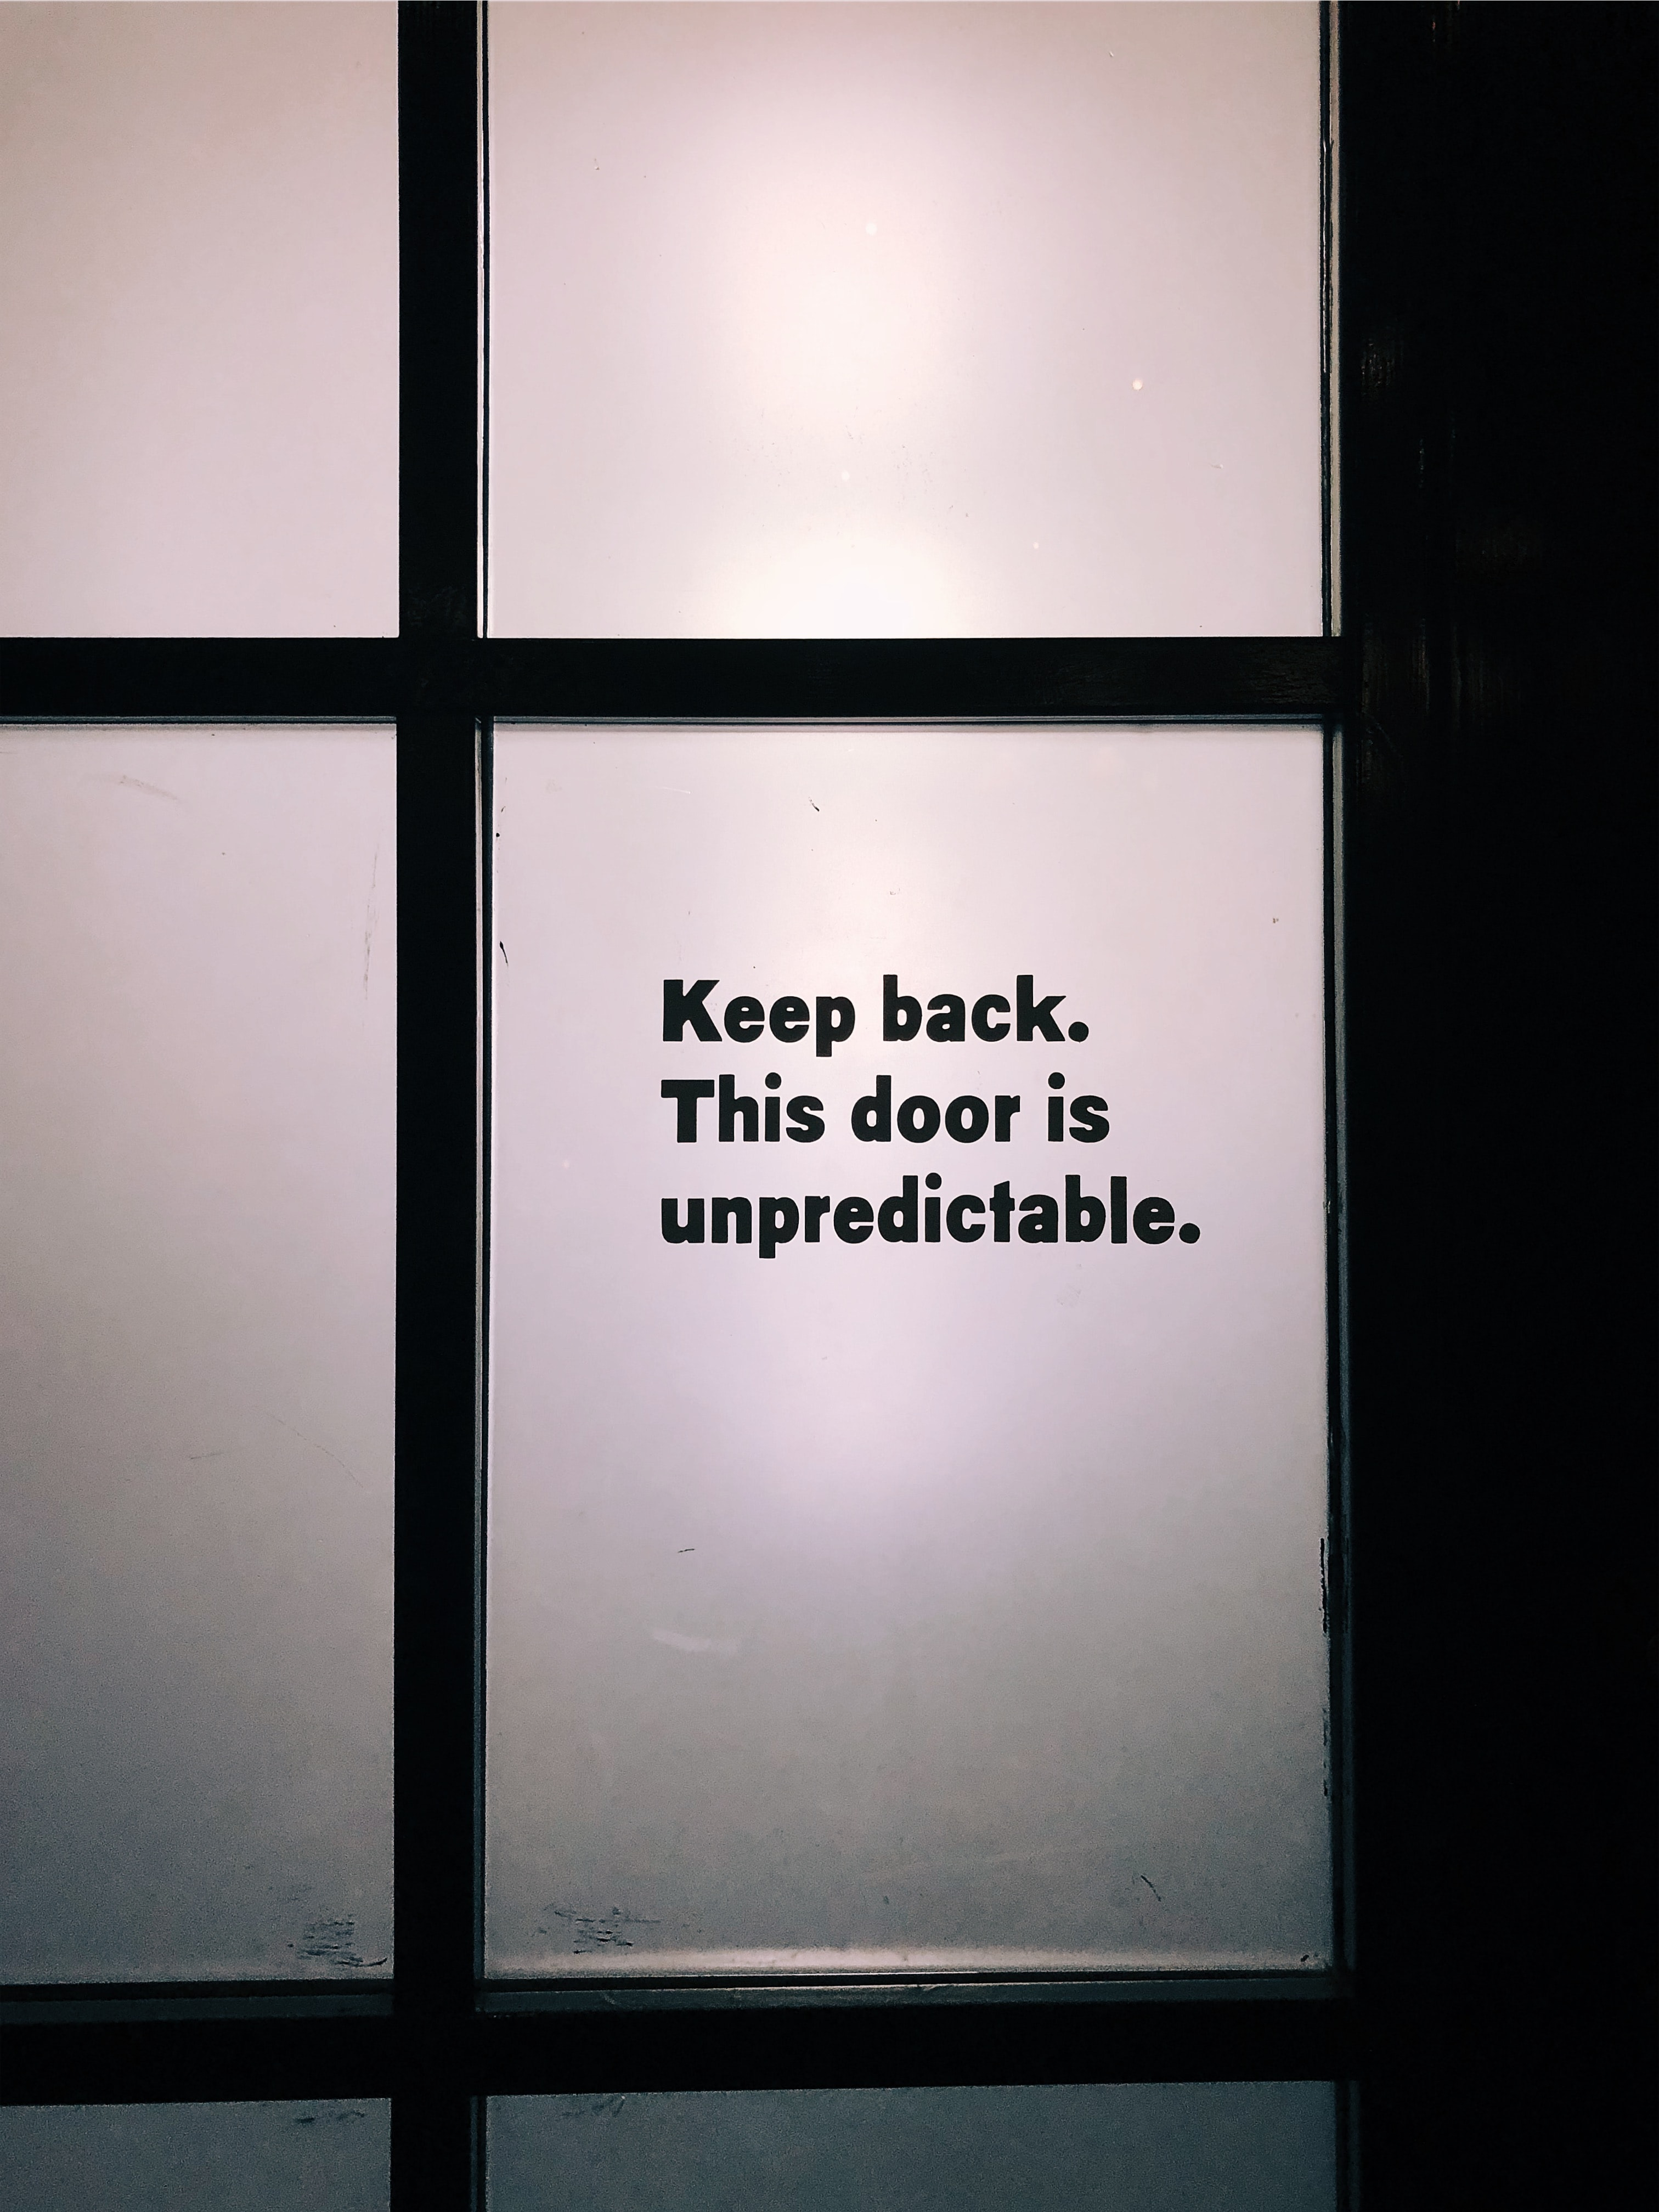 Keep back this door is unpredictable decals